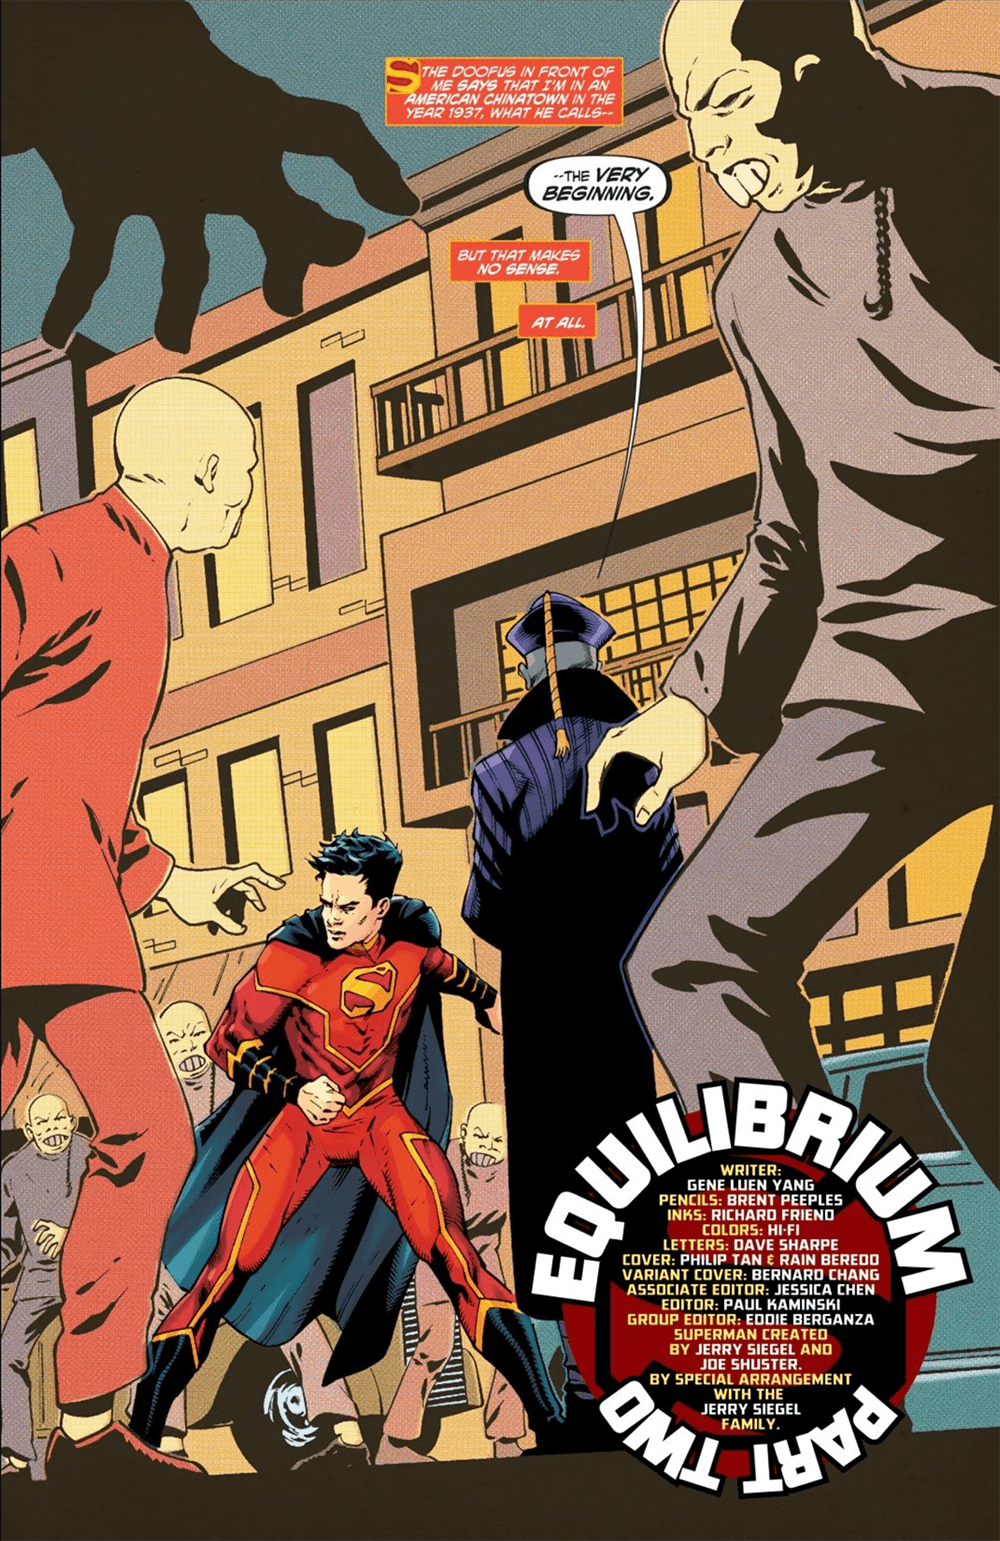 New Superman #16, first page